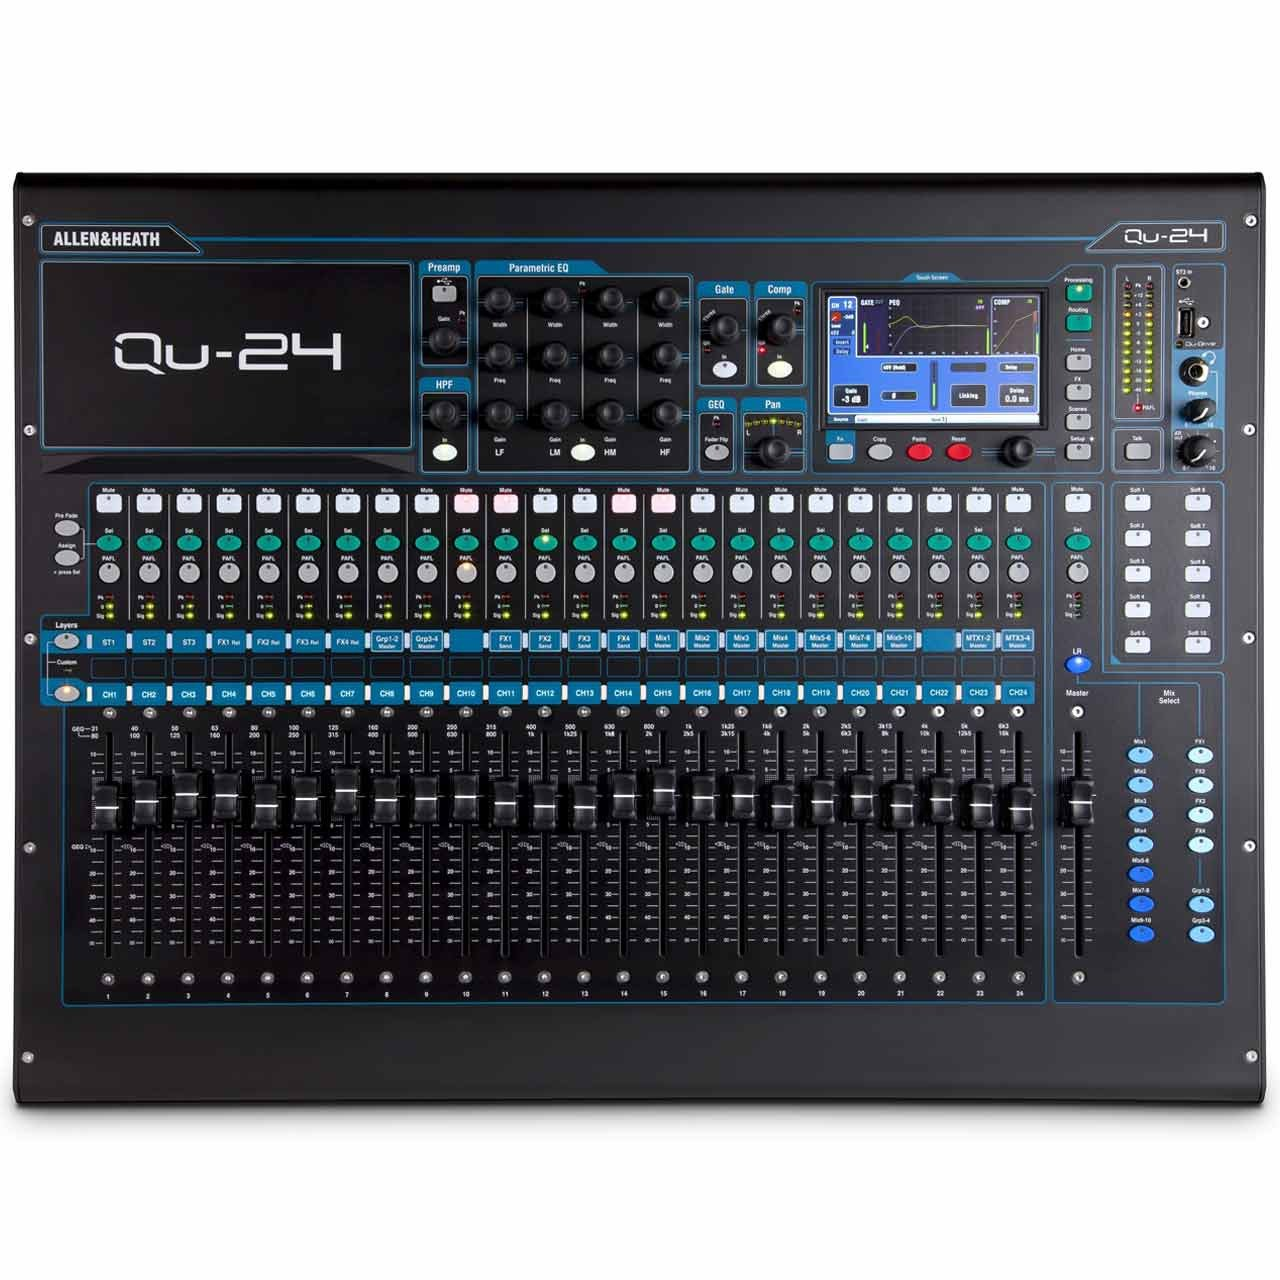 Digital Mixers - Allen & Heath QU-24 Digital Mixer